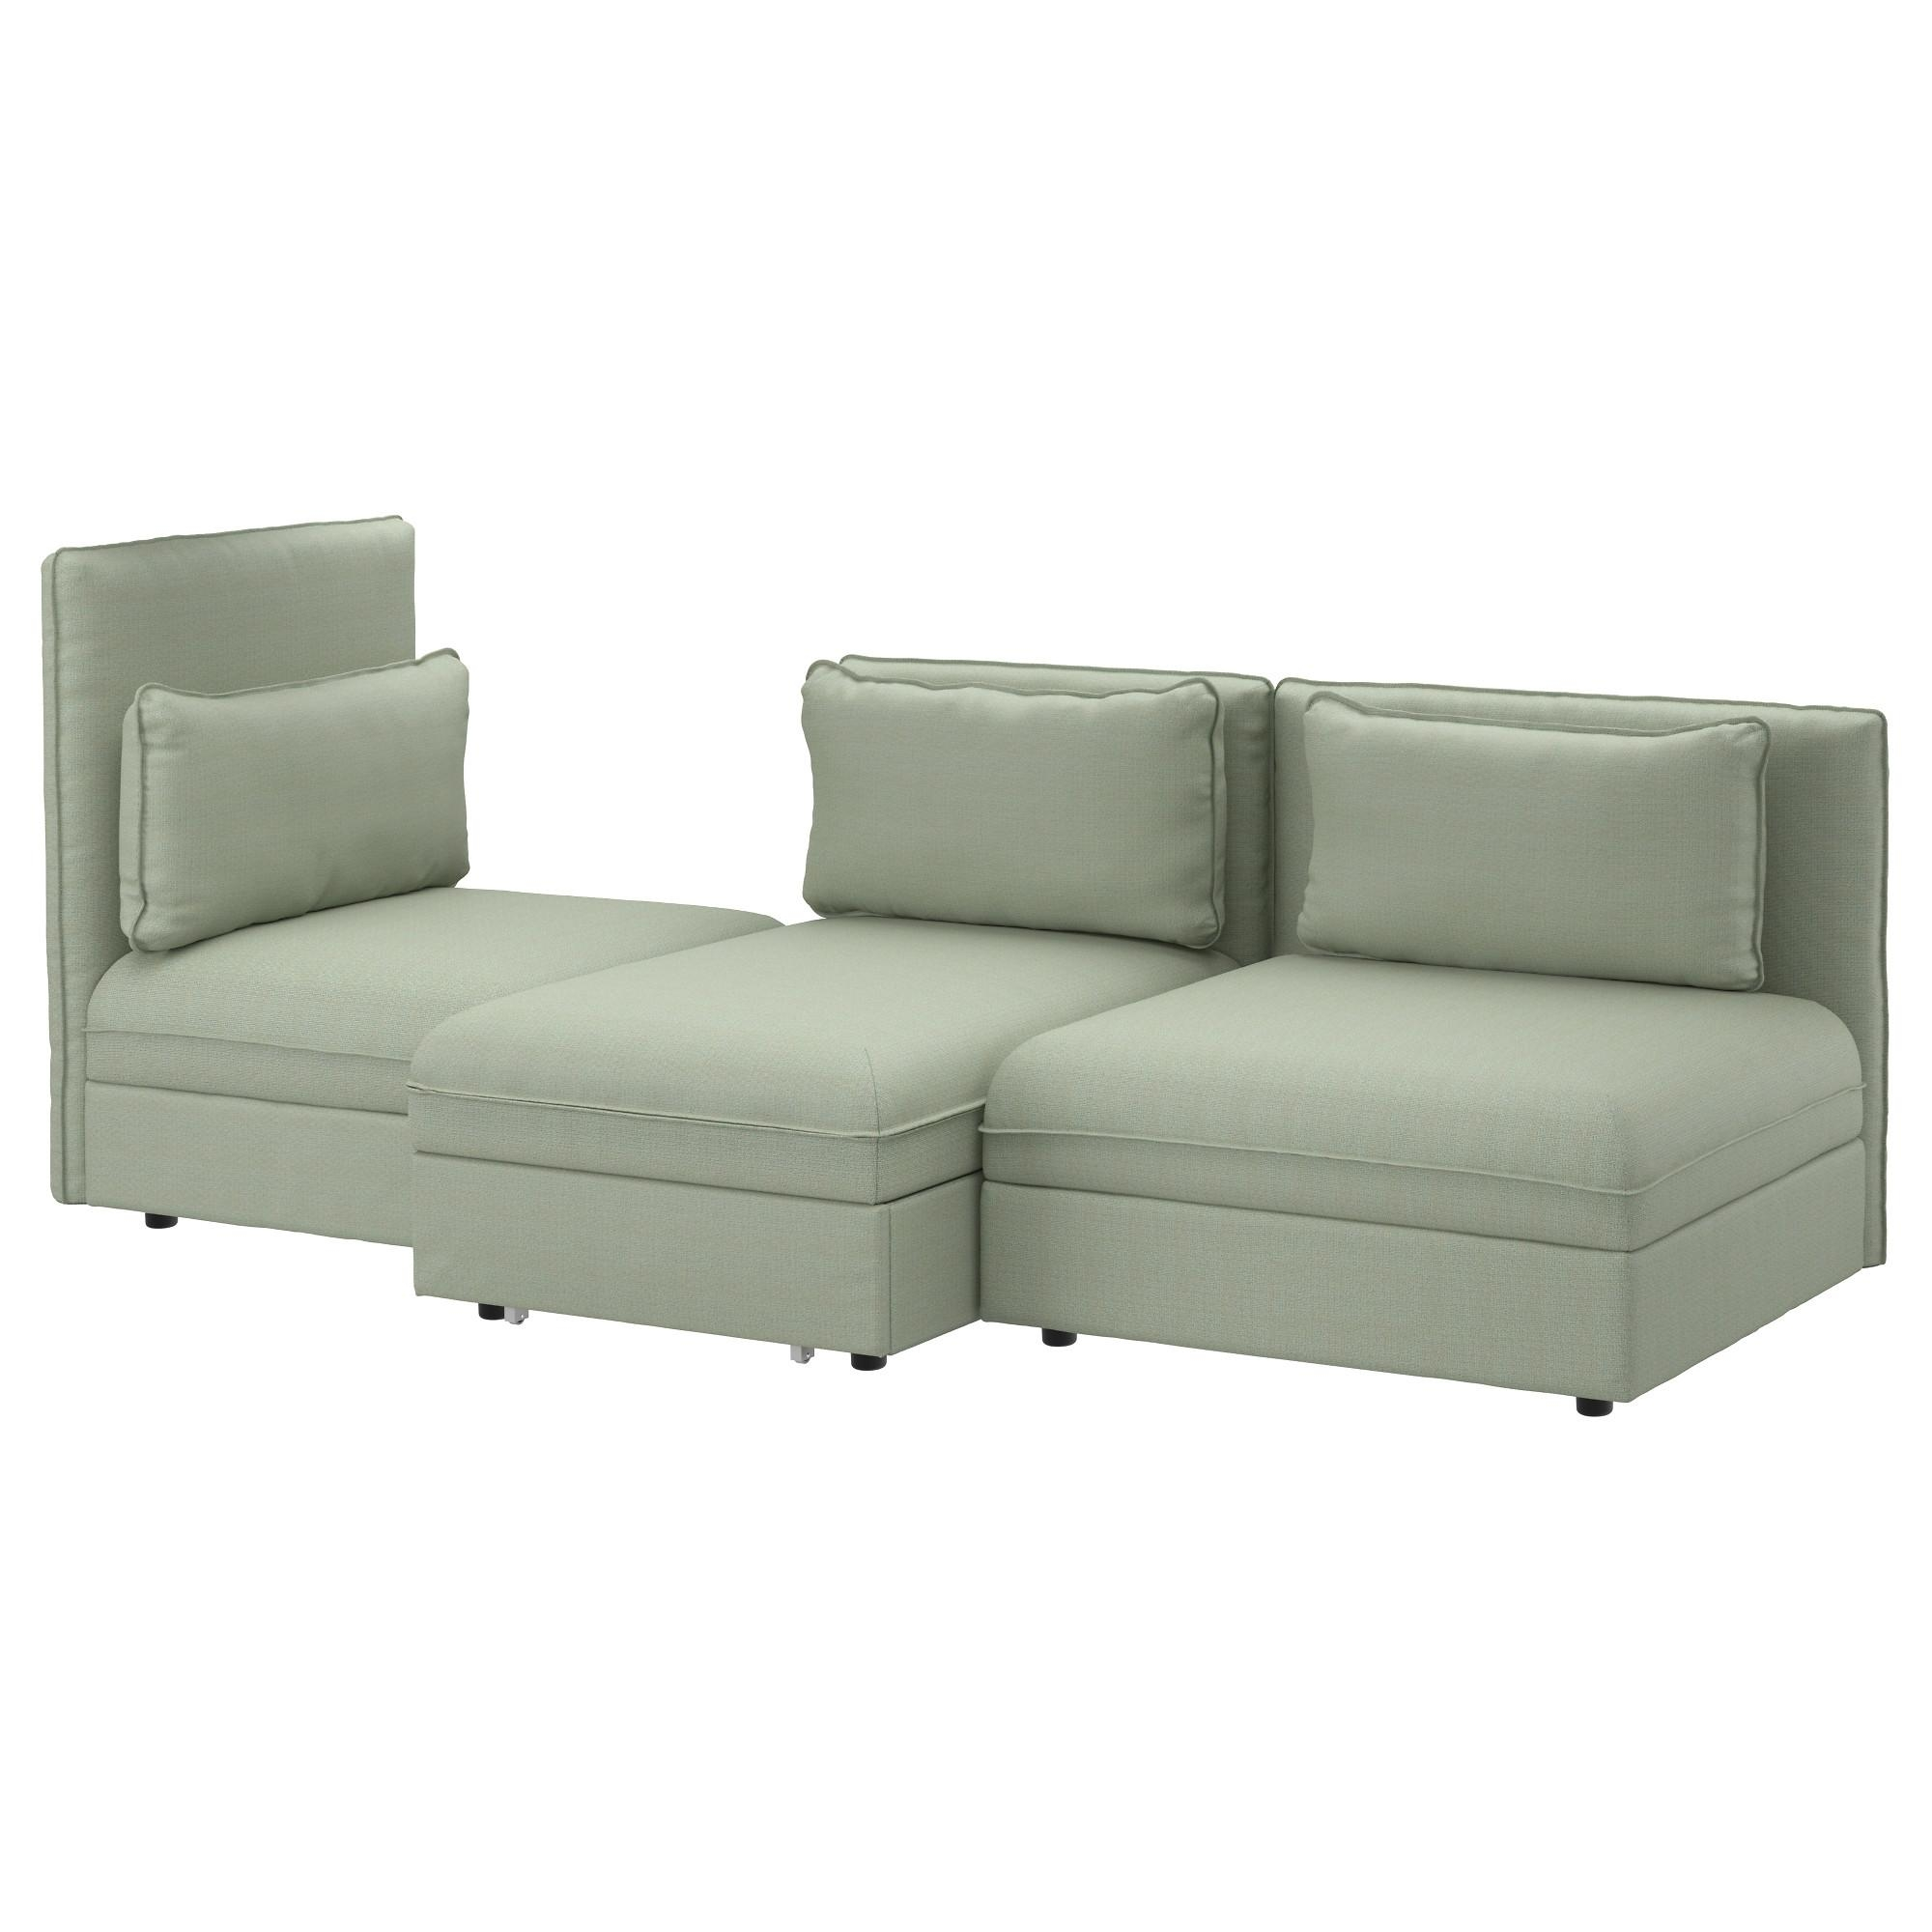 Sofa Beds & Futons – Ikea Pertaining To Sleeper Sectional Sofa Ikea (View 20 of 20)